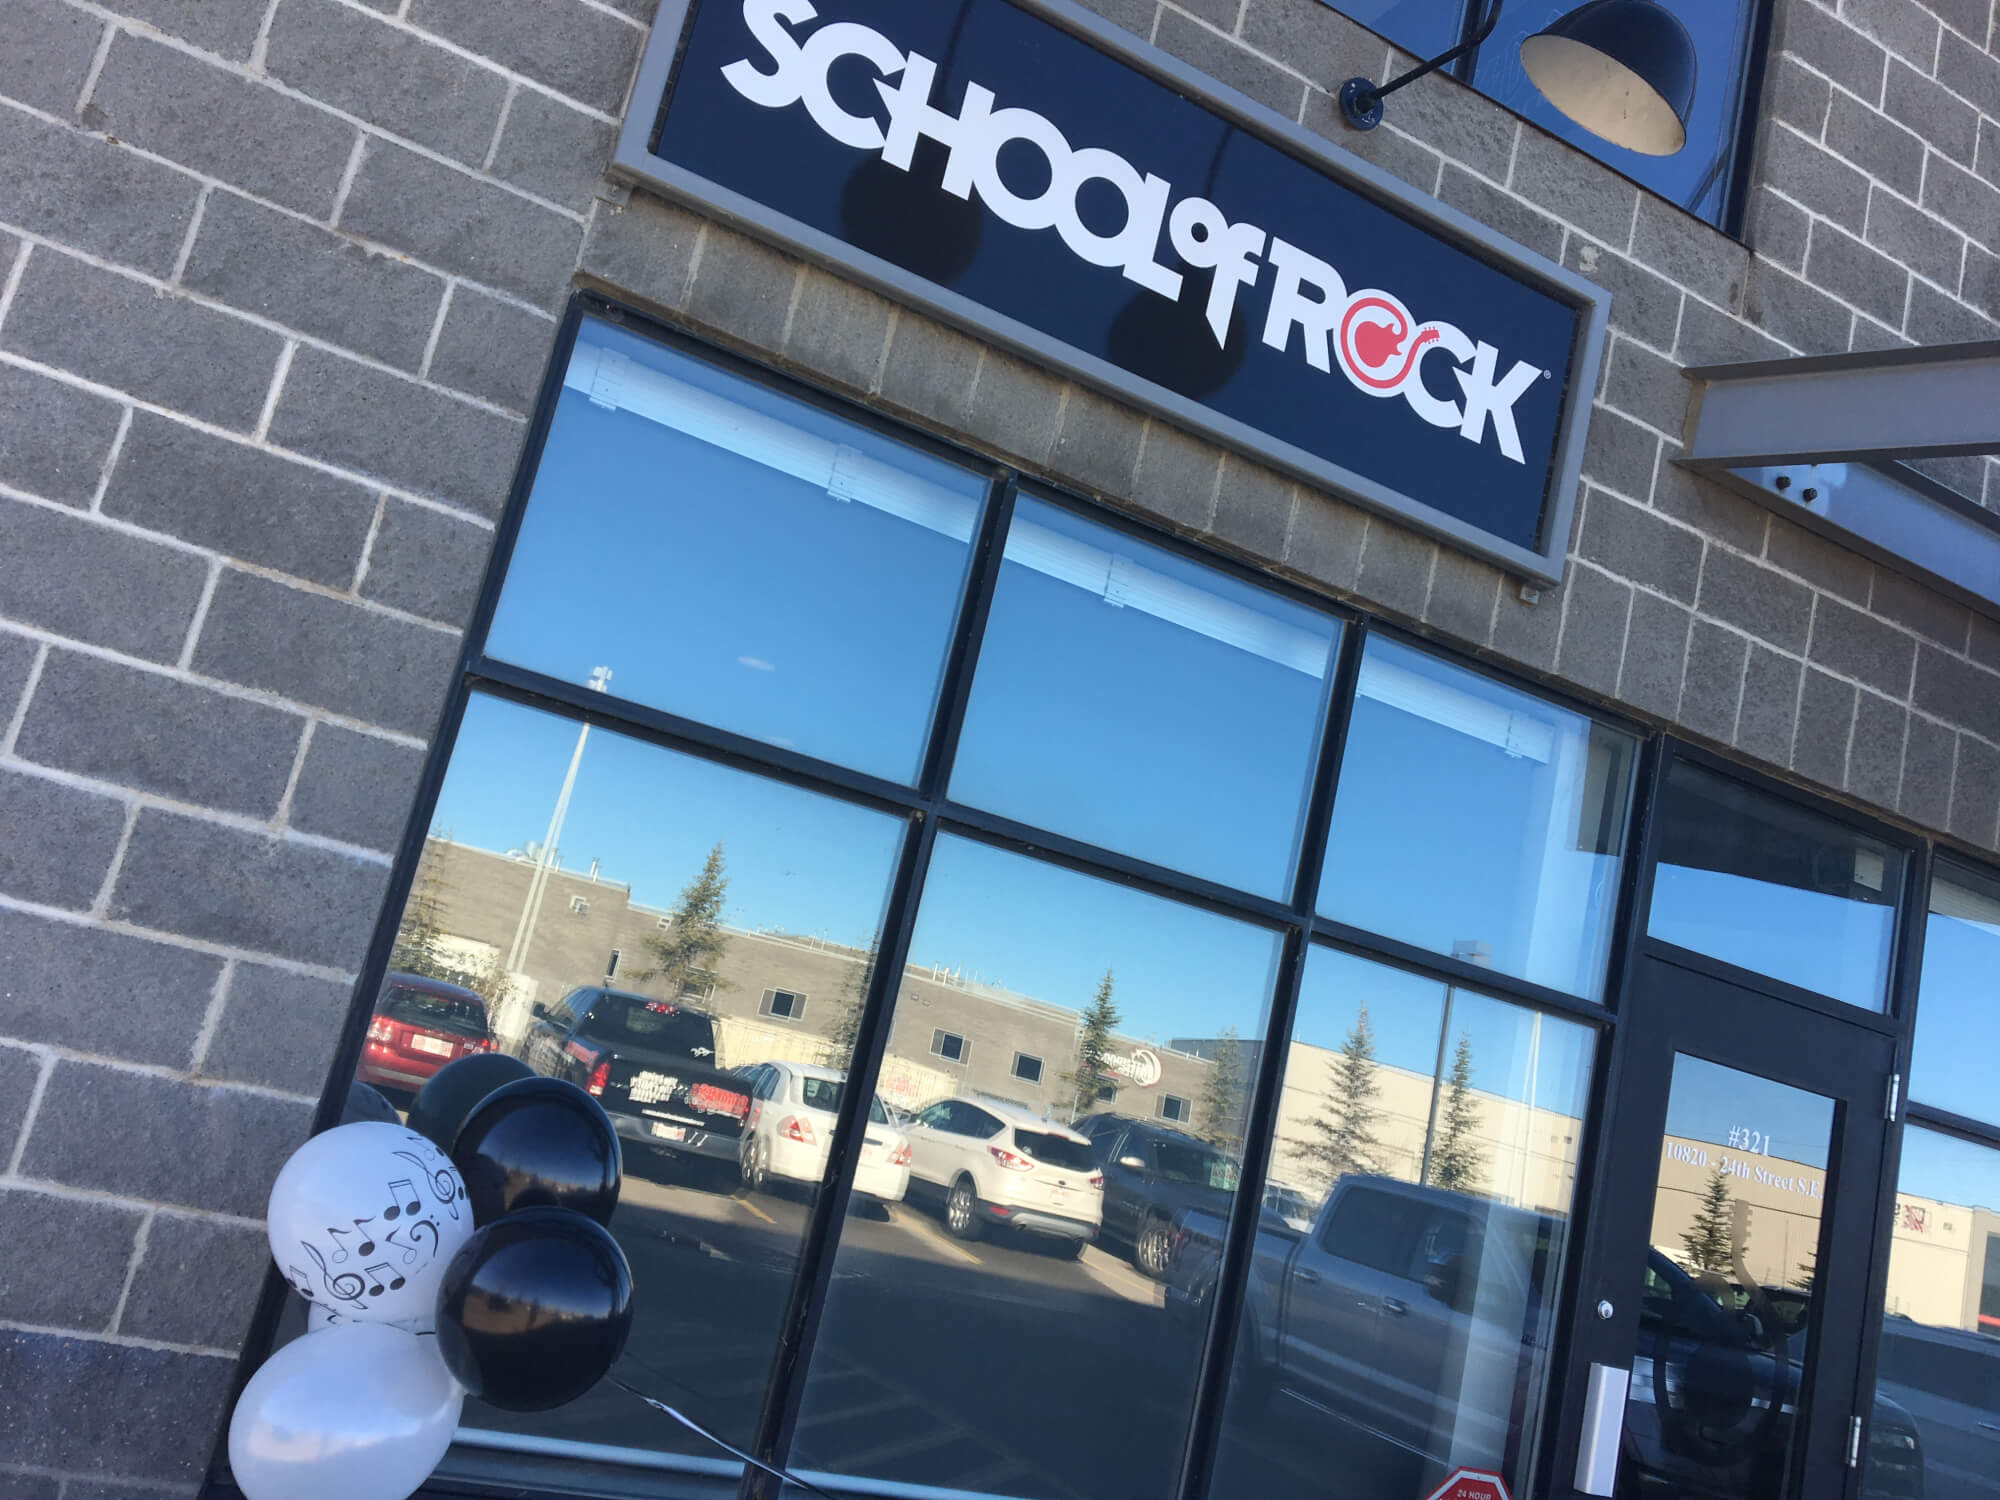 School of Rock Calgary South! Opened October 2017! Come on in and check us out :)